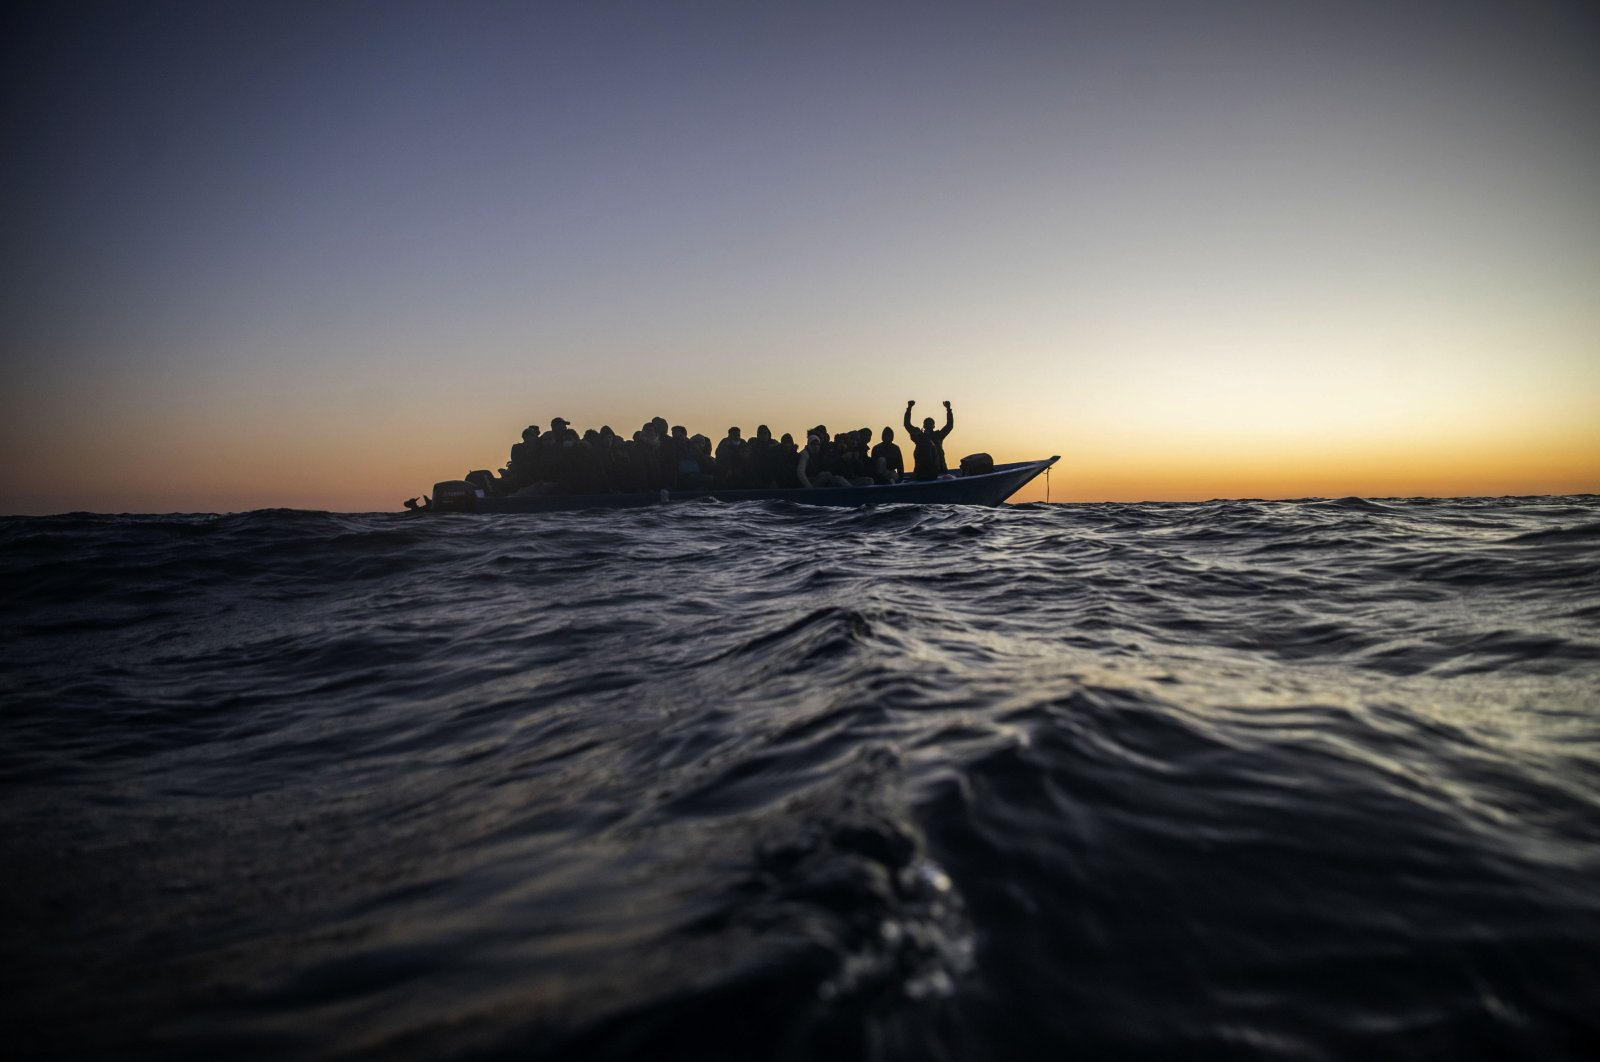 Migrants and refugees from different African nationalities wait for assistance on an overcrowded wooden boat in the Mediterranean Sea, international waters, at 122 miles (196 kilometers) off the Libyan coast, Feb. 12, 2021. (AP Photo)